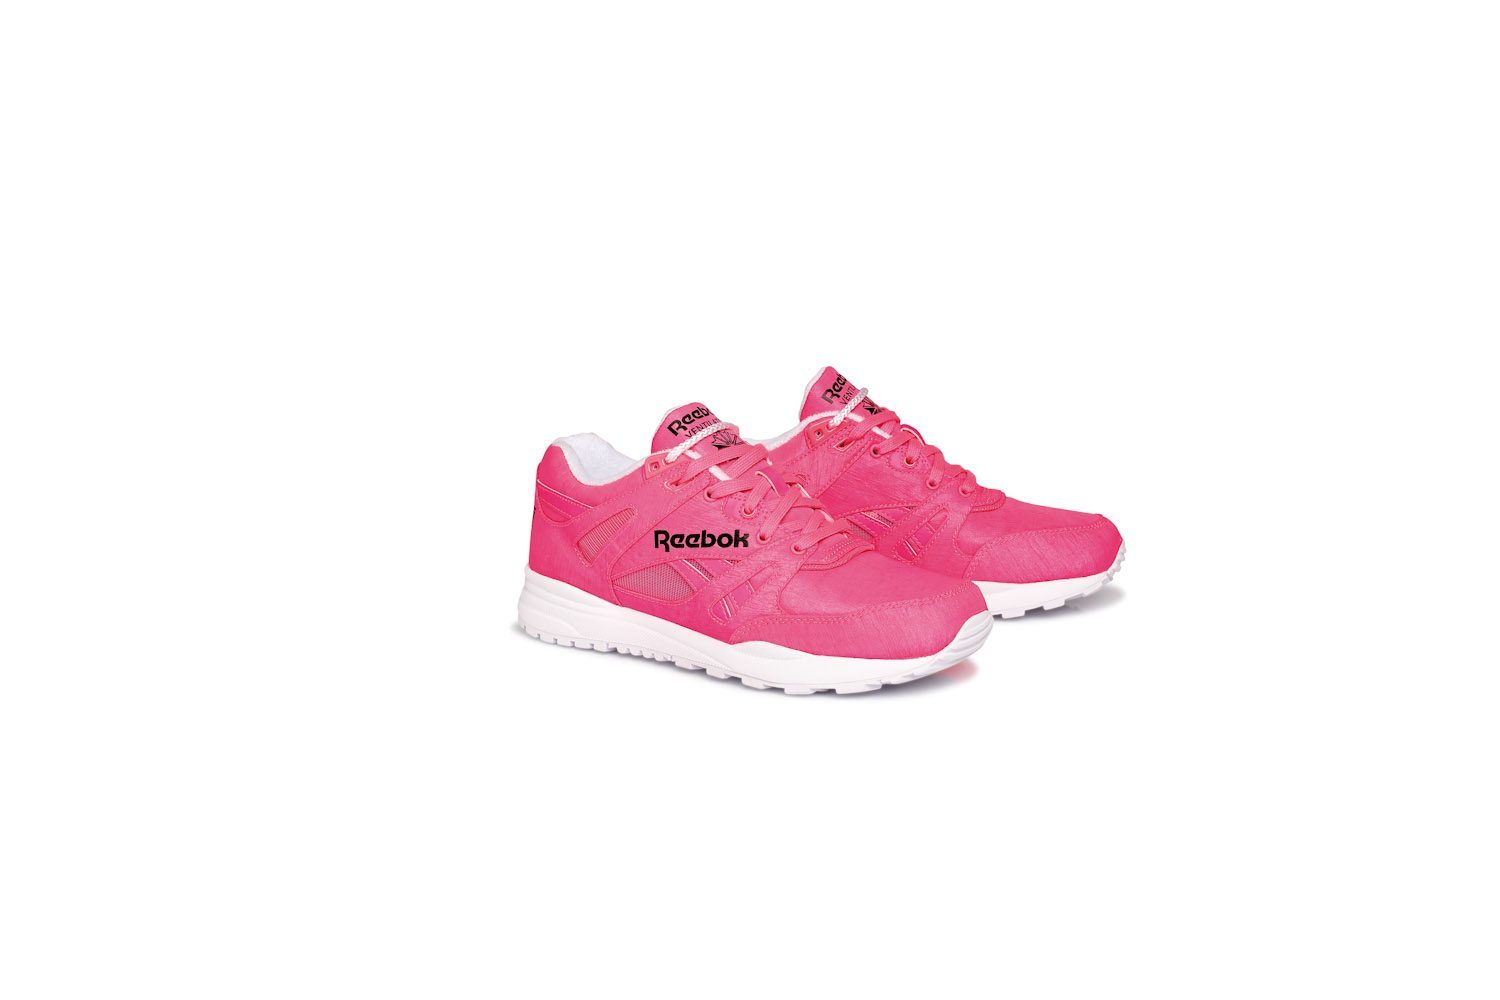 Reebok Classic Ventilator Day Glo Pack 9